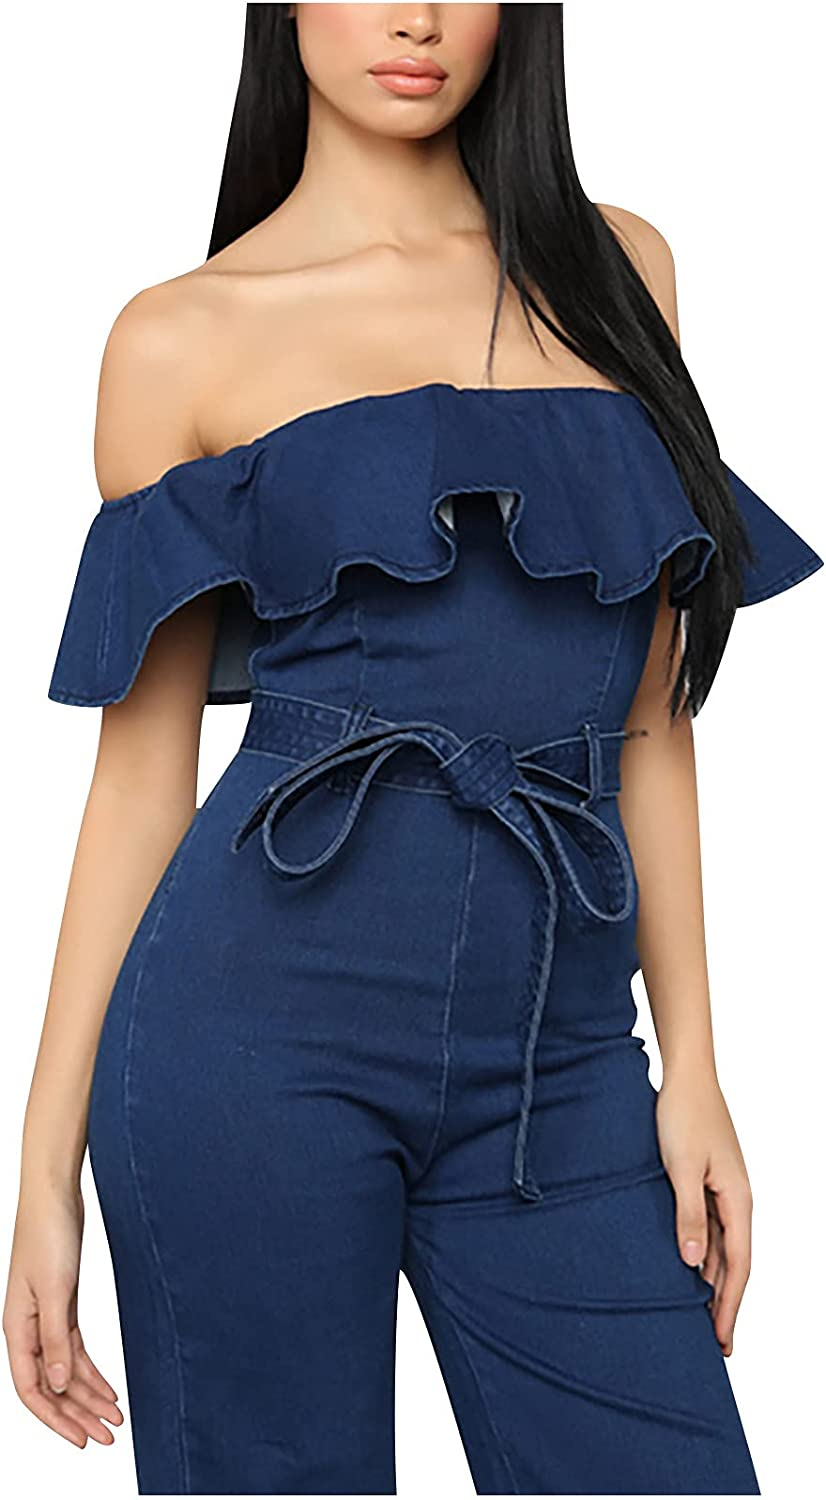 Rompers Jumpsuits for Women Elegant Sexy Off Shoulder Ruffled Tight Fitting Hip Washed Denim Jumpsuit